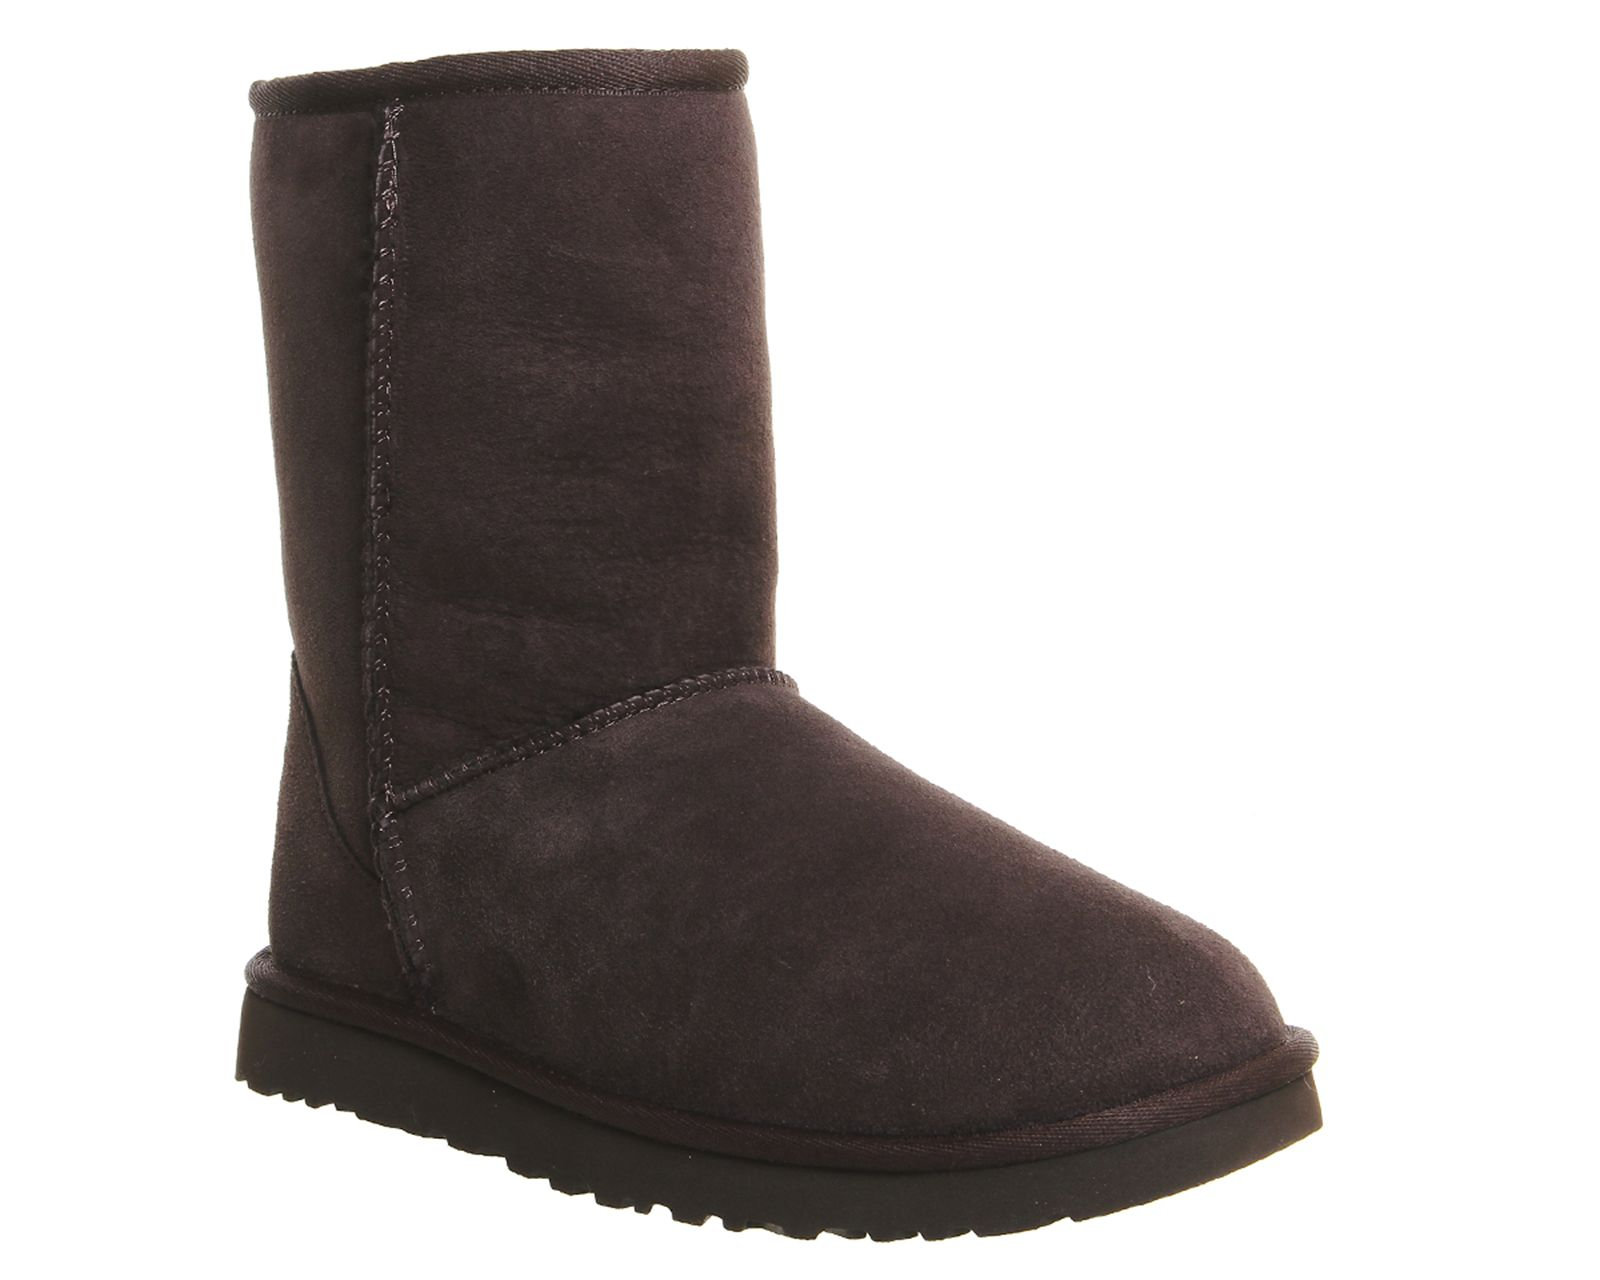 Buy Chocolate UGG Australia Classic Short Boots from OFFICE.co.uk.